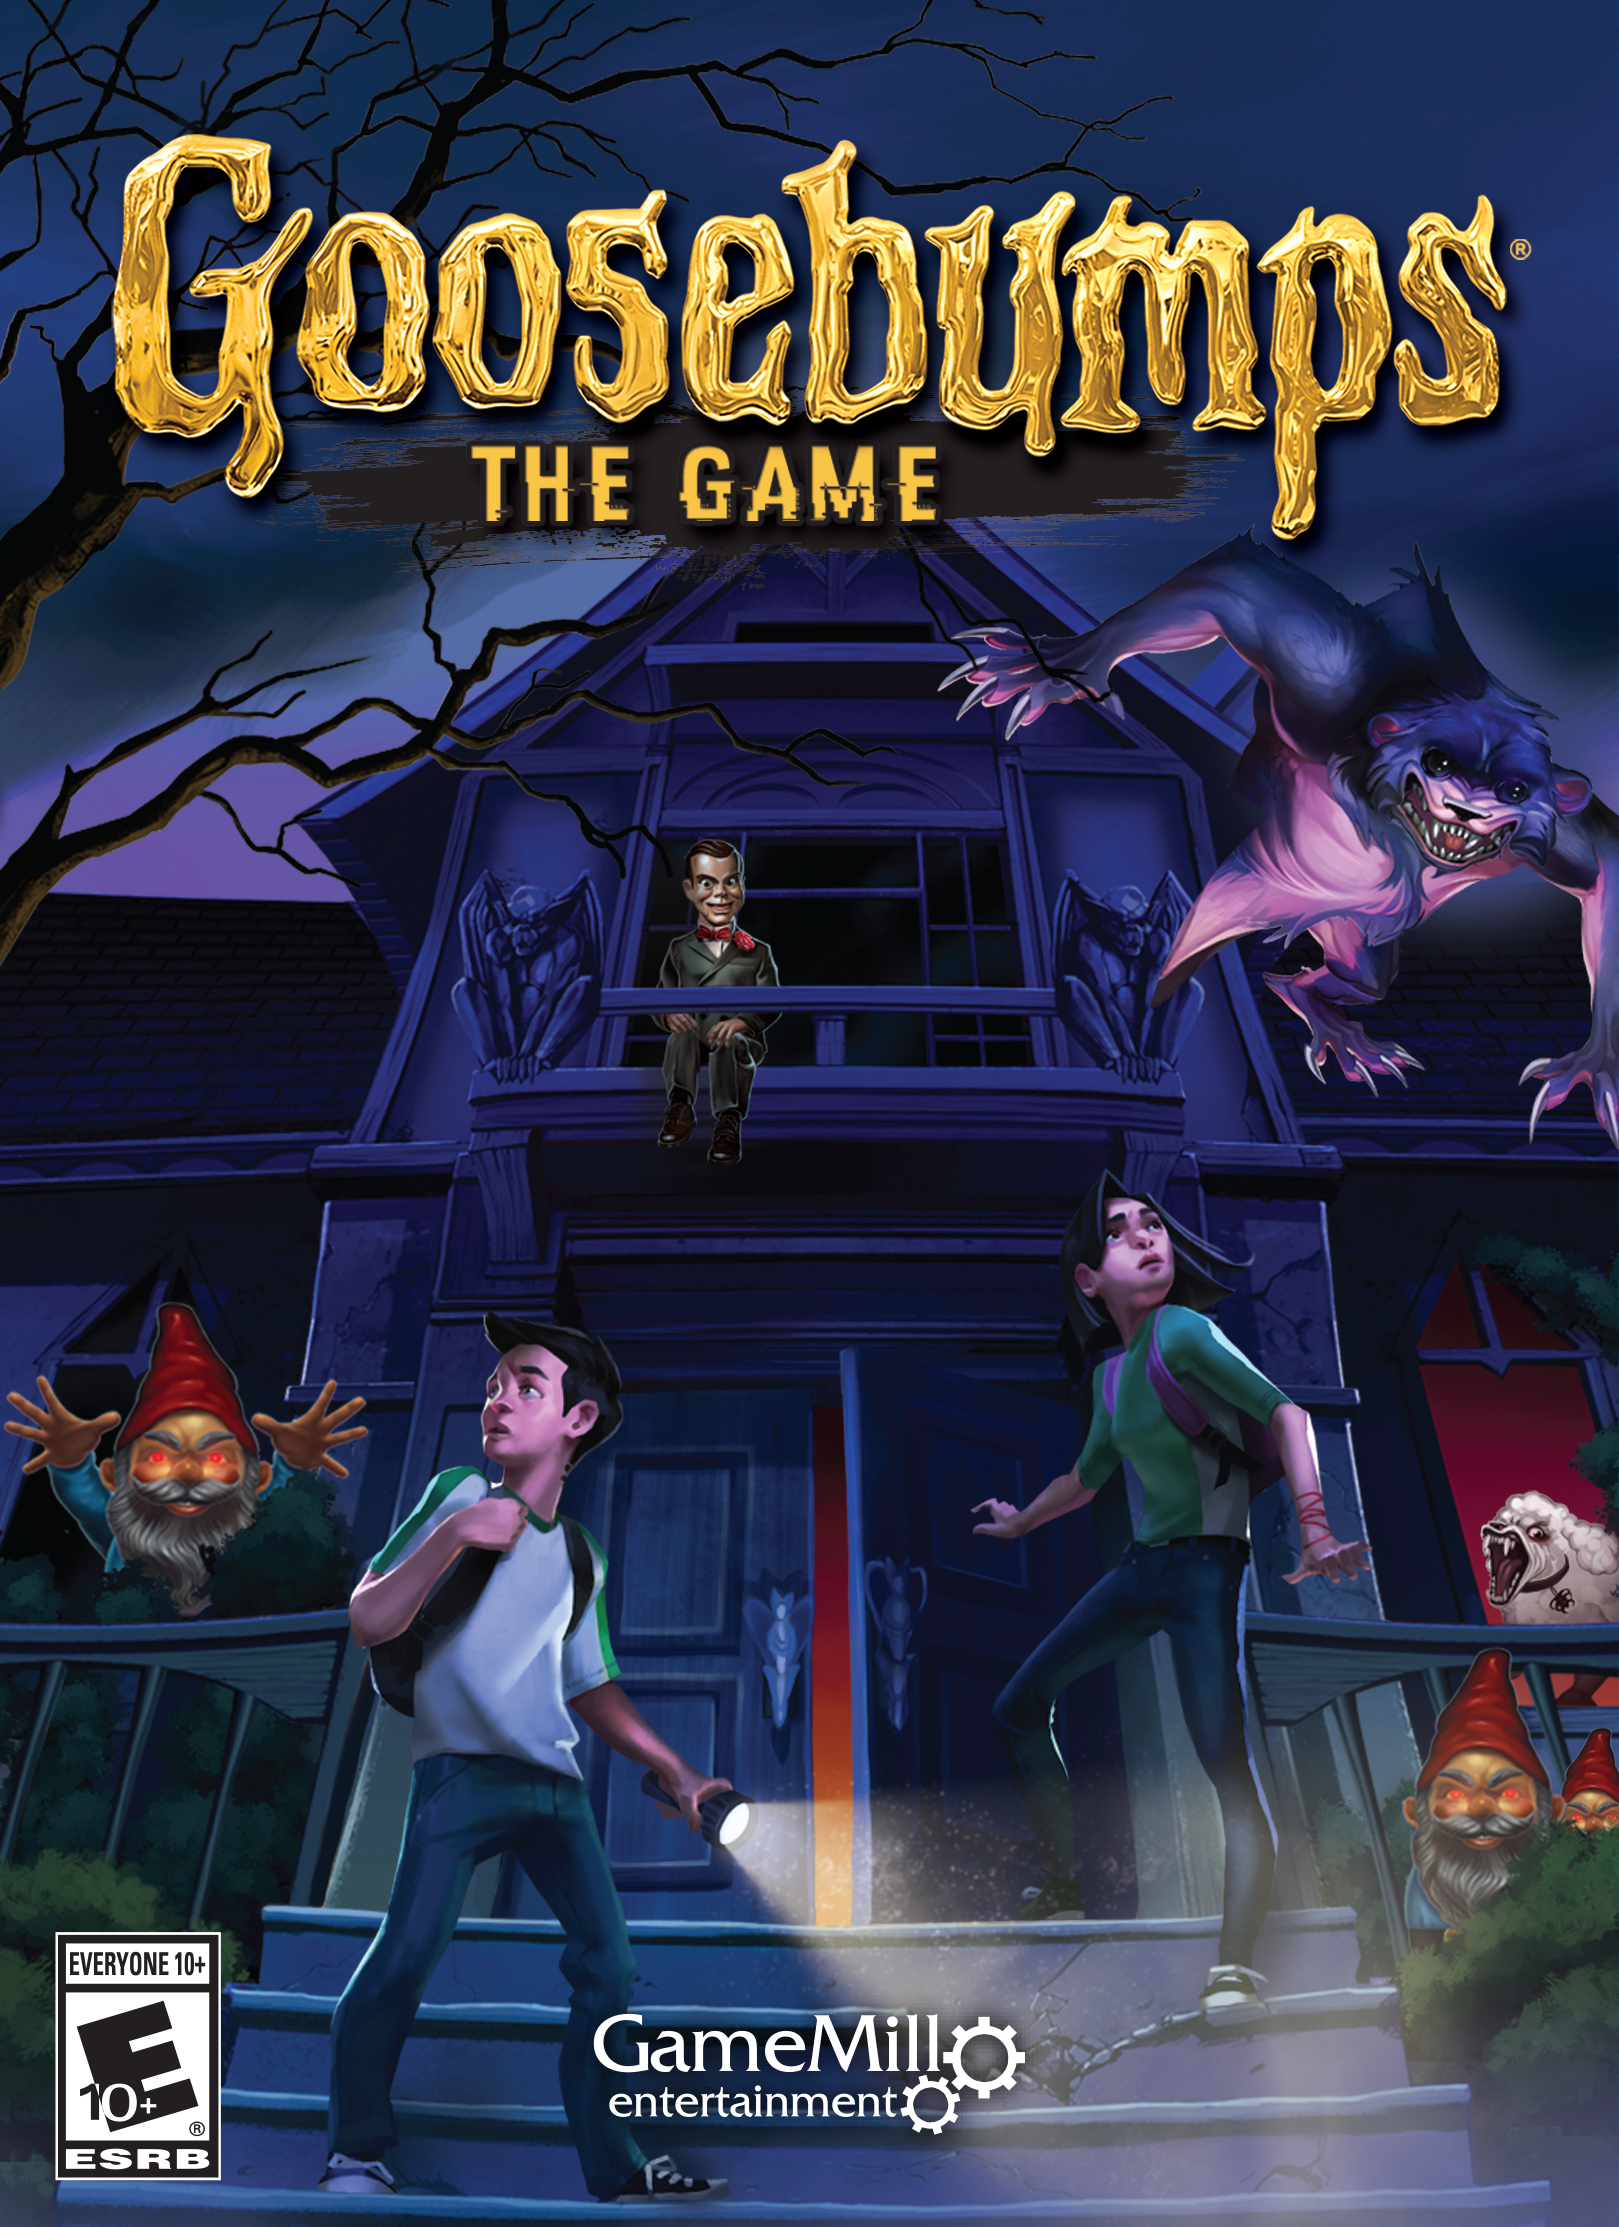 Goosebumps  The Game  Steam Key   Online Game Code